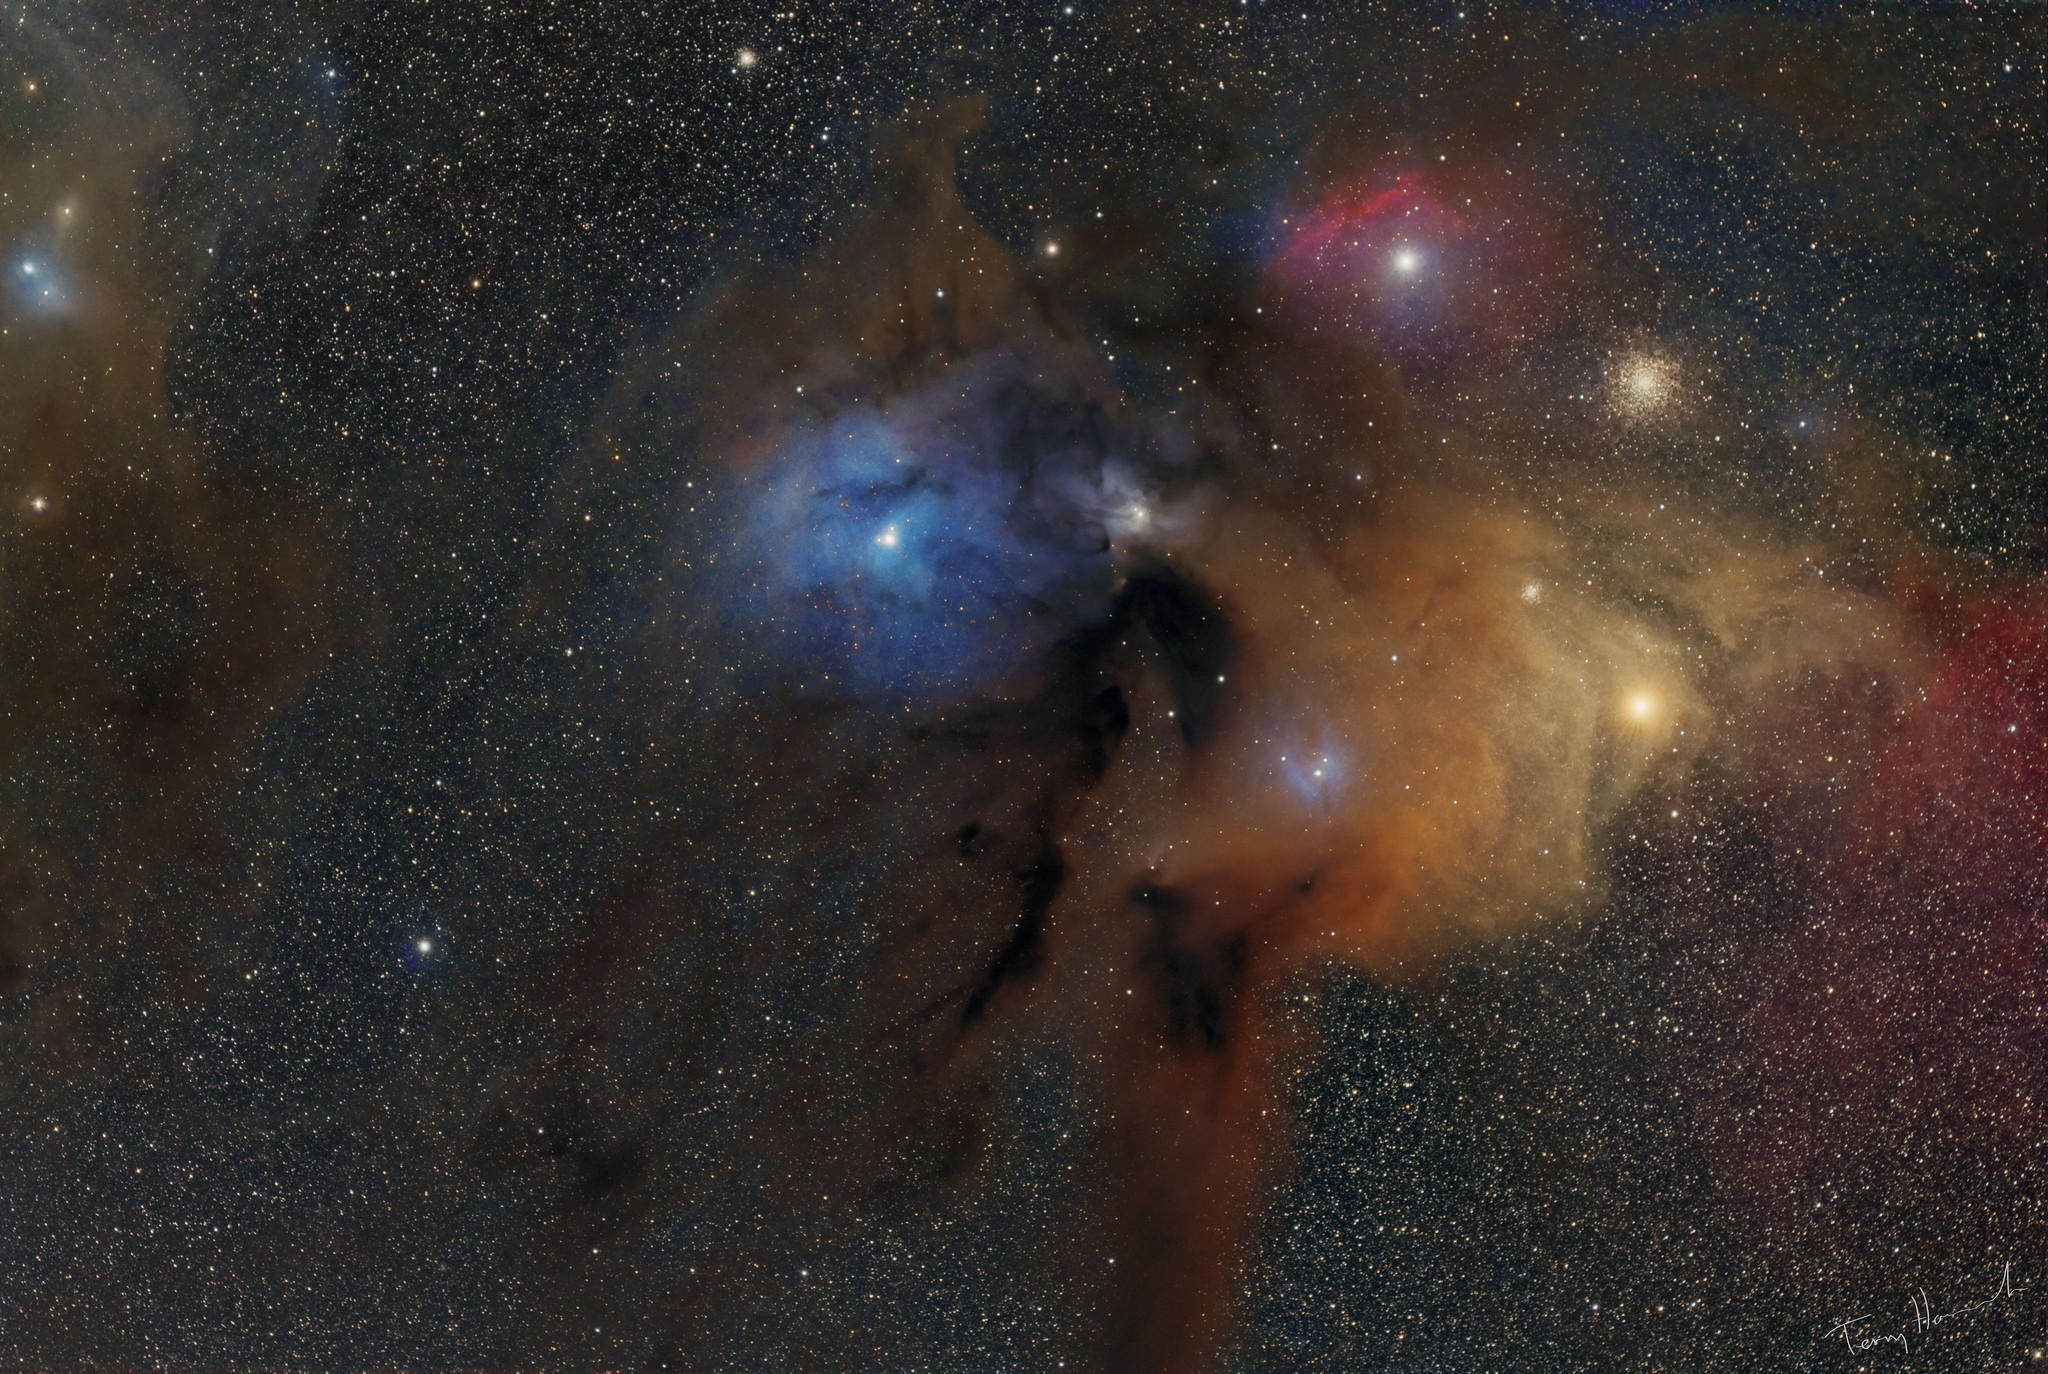 Rho Ophiuchi with the Redcat Captured May 2019 over 3 nights  QHY128C Full Frame One Shot Color COLDMOS cooled to -20C  Size: 6036x4028 pixels  Pixel Size: 5.97 x 5.97 um  Gain 1208, Offset 60  Darks, Bias and Flat Calibration  32 x 600 sec  Optics: William Optics Redcat 51 APO 250mm F4.9 williamoptics.com/redcat-51  Paramount ME German Equatorial Mount  Image Acquisition Maxim DL  Pre Processing Pixinsight  Post Processing Photoshop CC